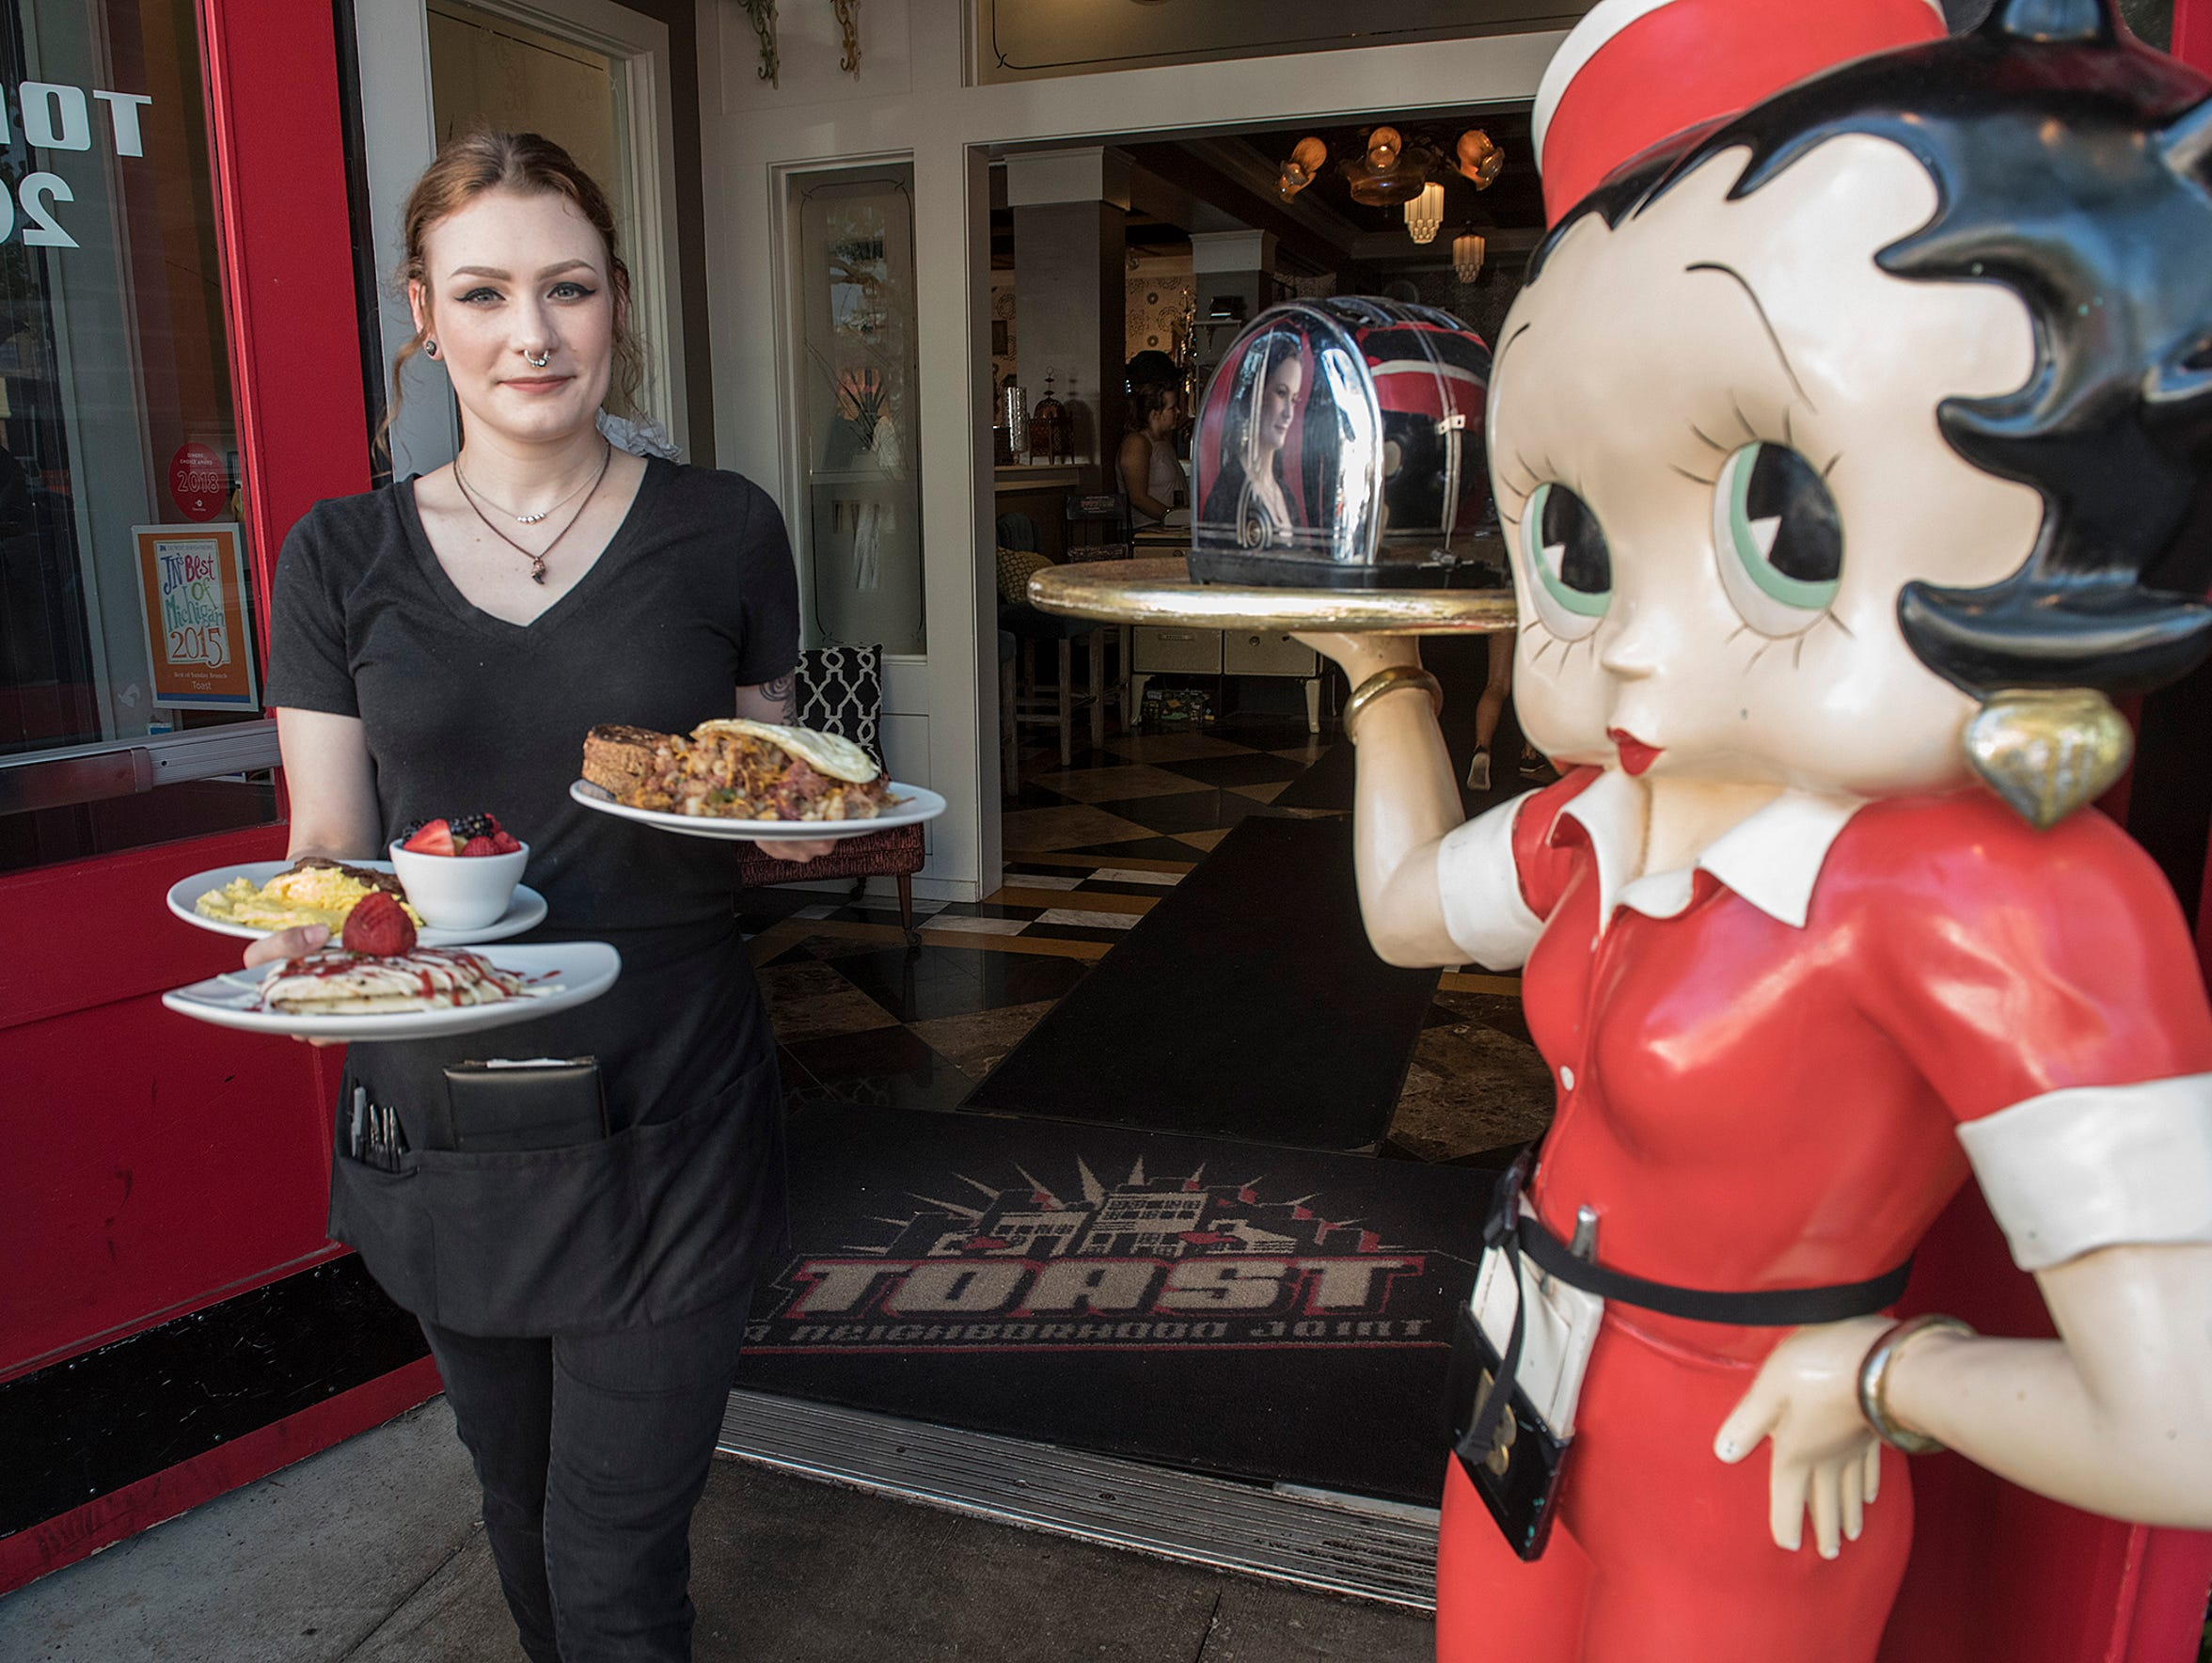 Courtney McManus brings an order to patrons at Toast,